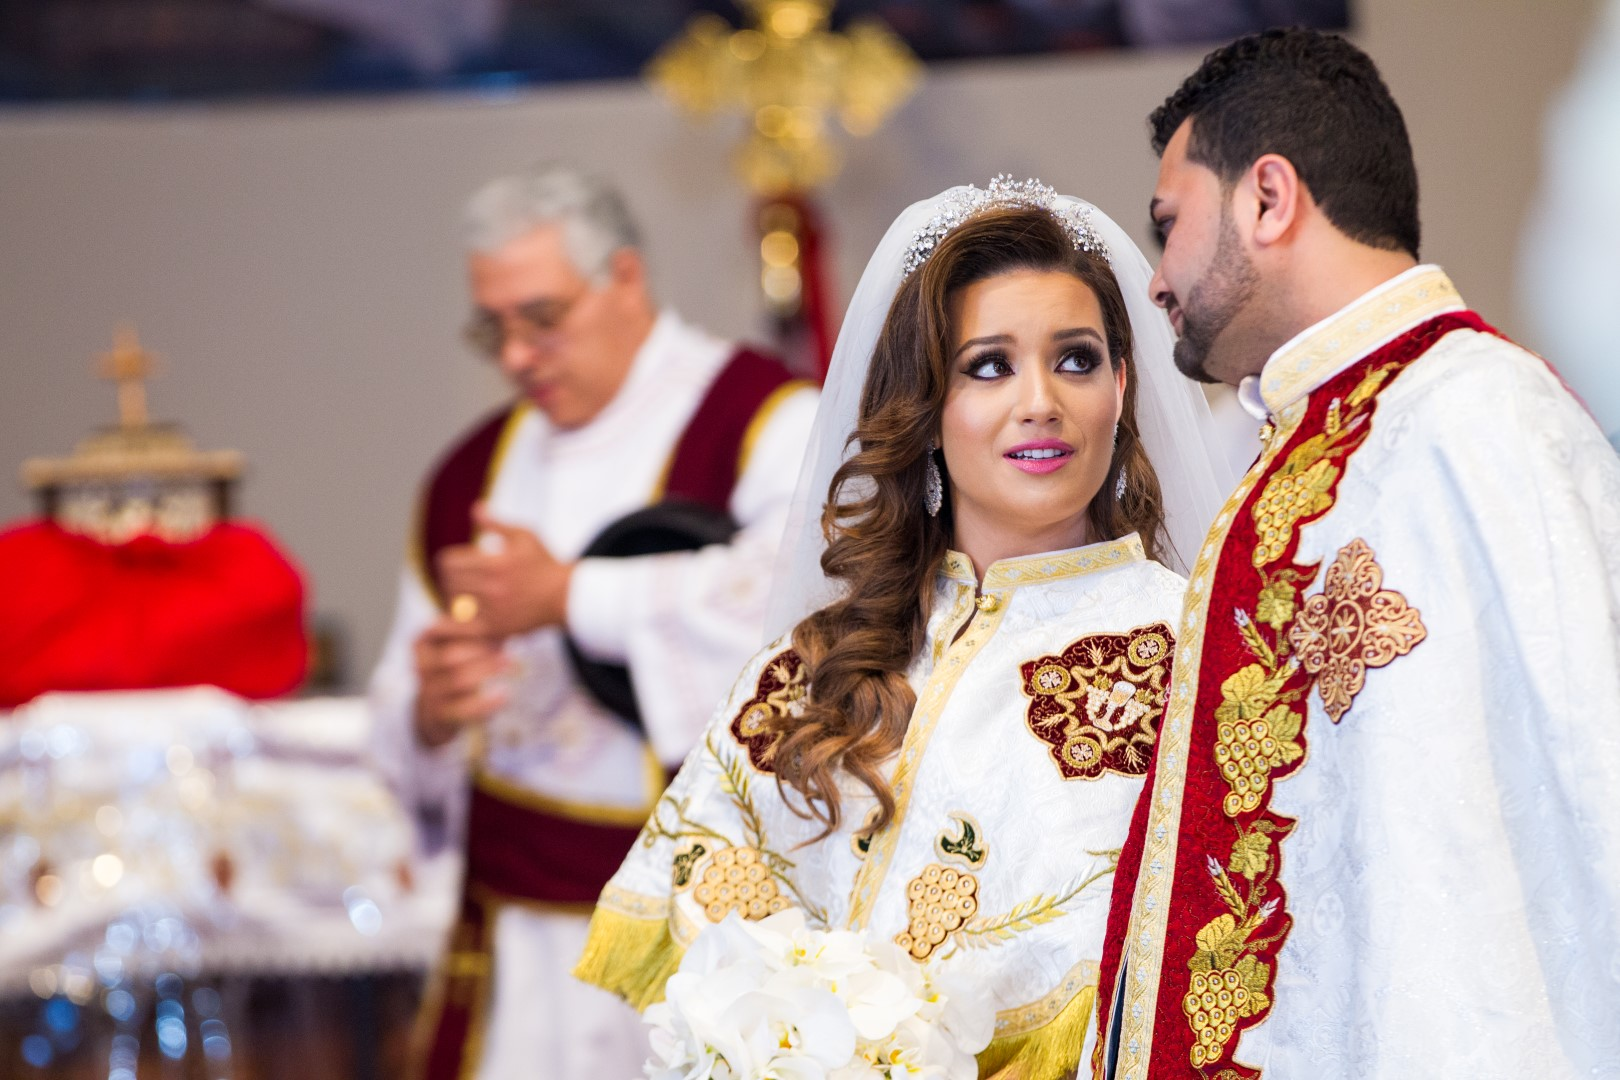 Everything You Need to Know Before Going to a Coptic Eastern Orthodox Wedding